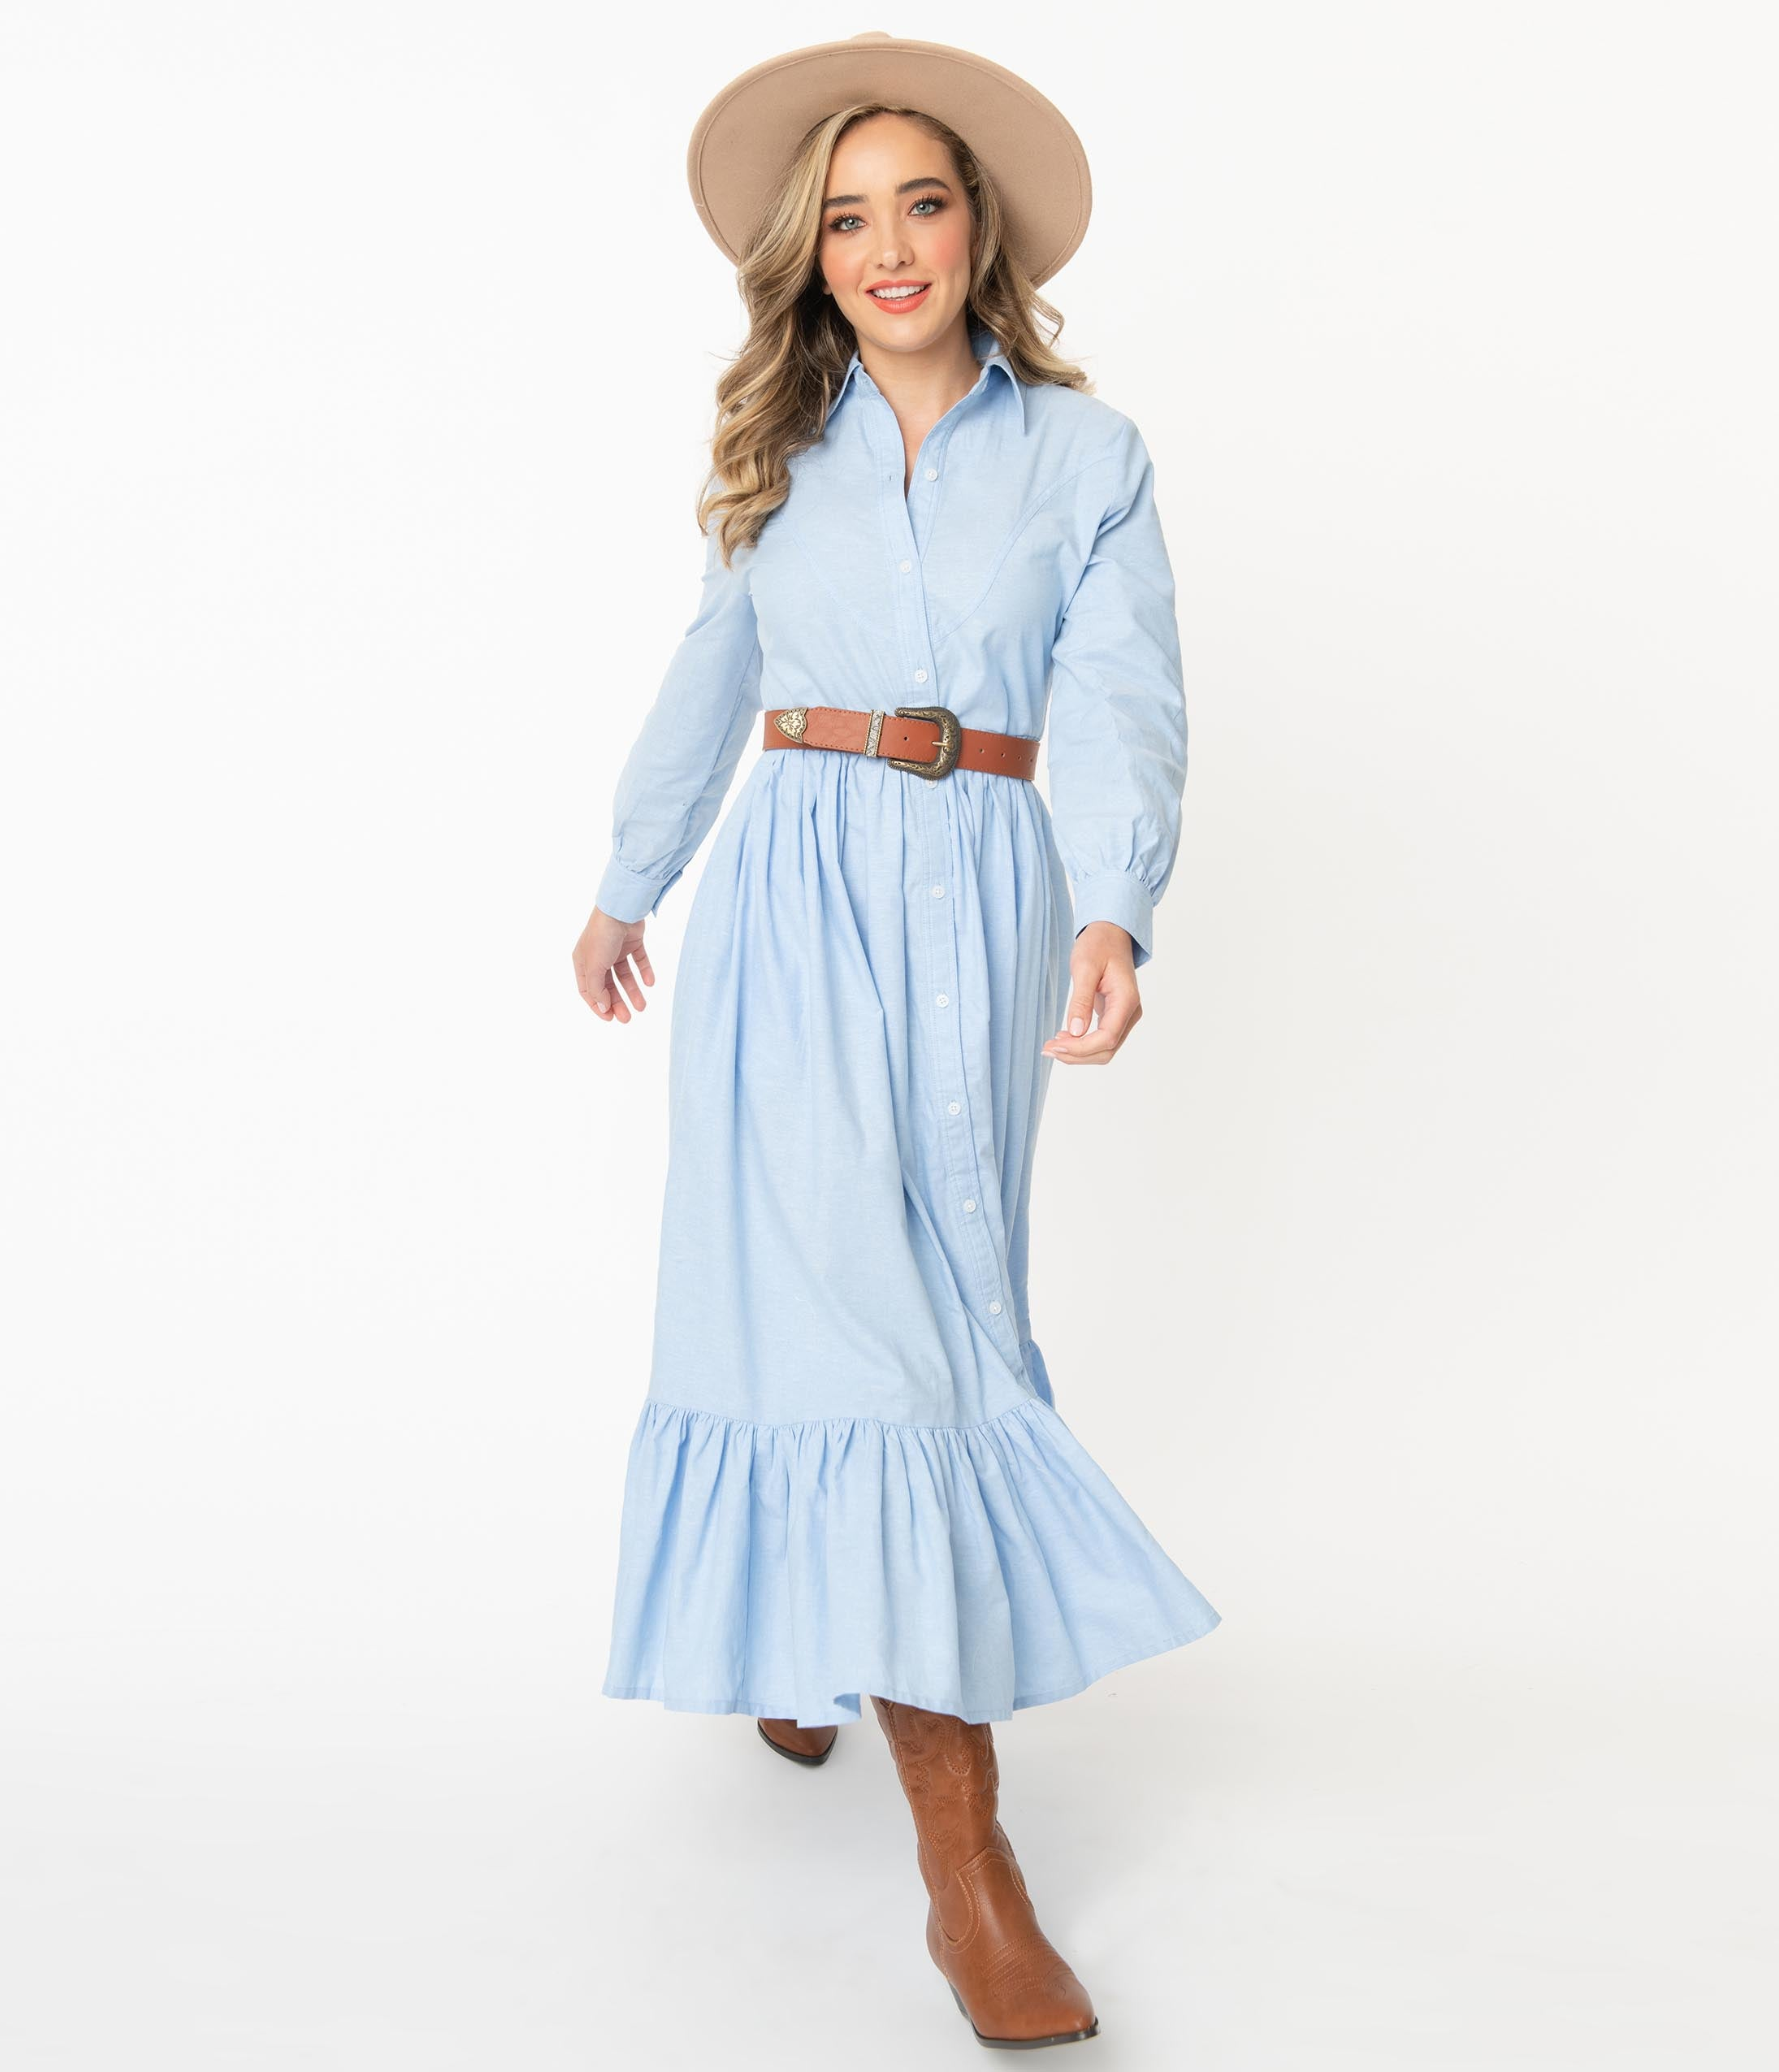 70s Outfits – 70s Style Ideas for Women Magnolia Place Western Style Chambray Maxi Dress $88.00 AT vintagedancer.com